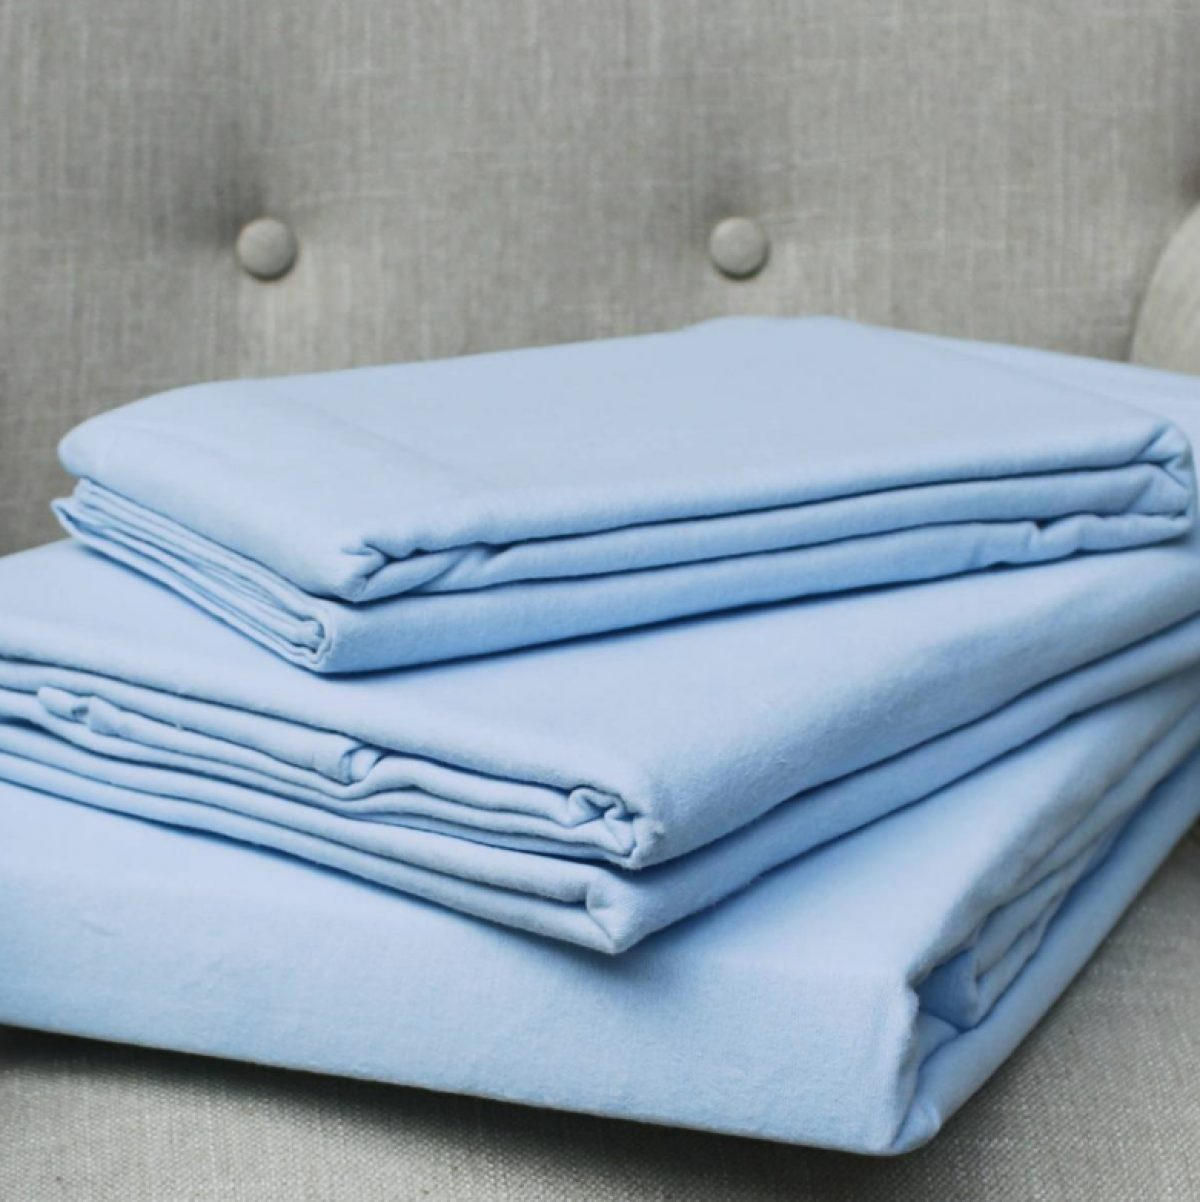 Blue fitted sheet